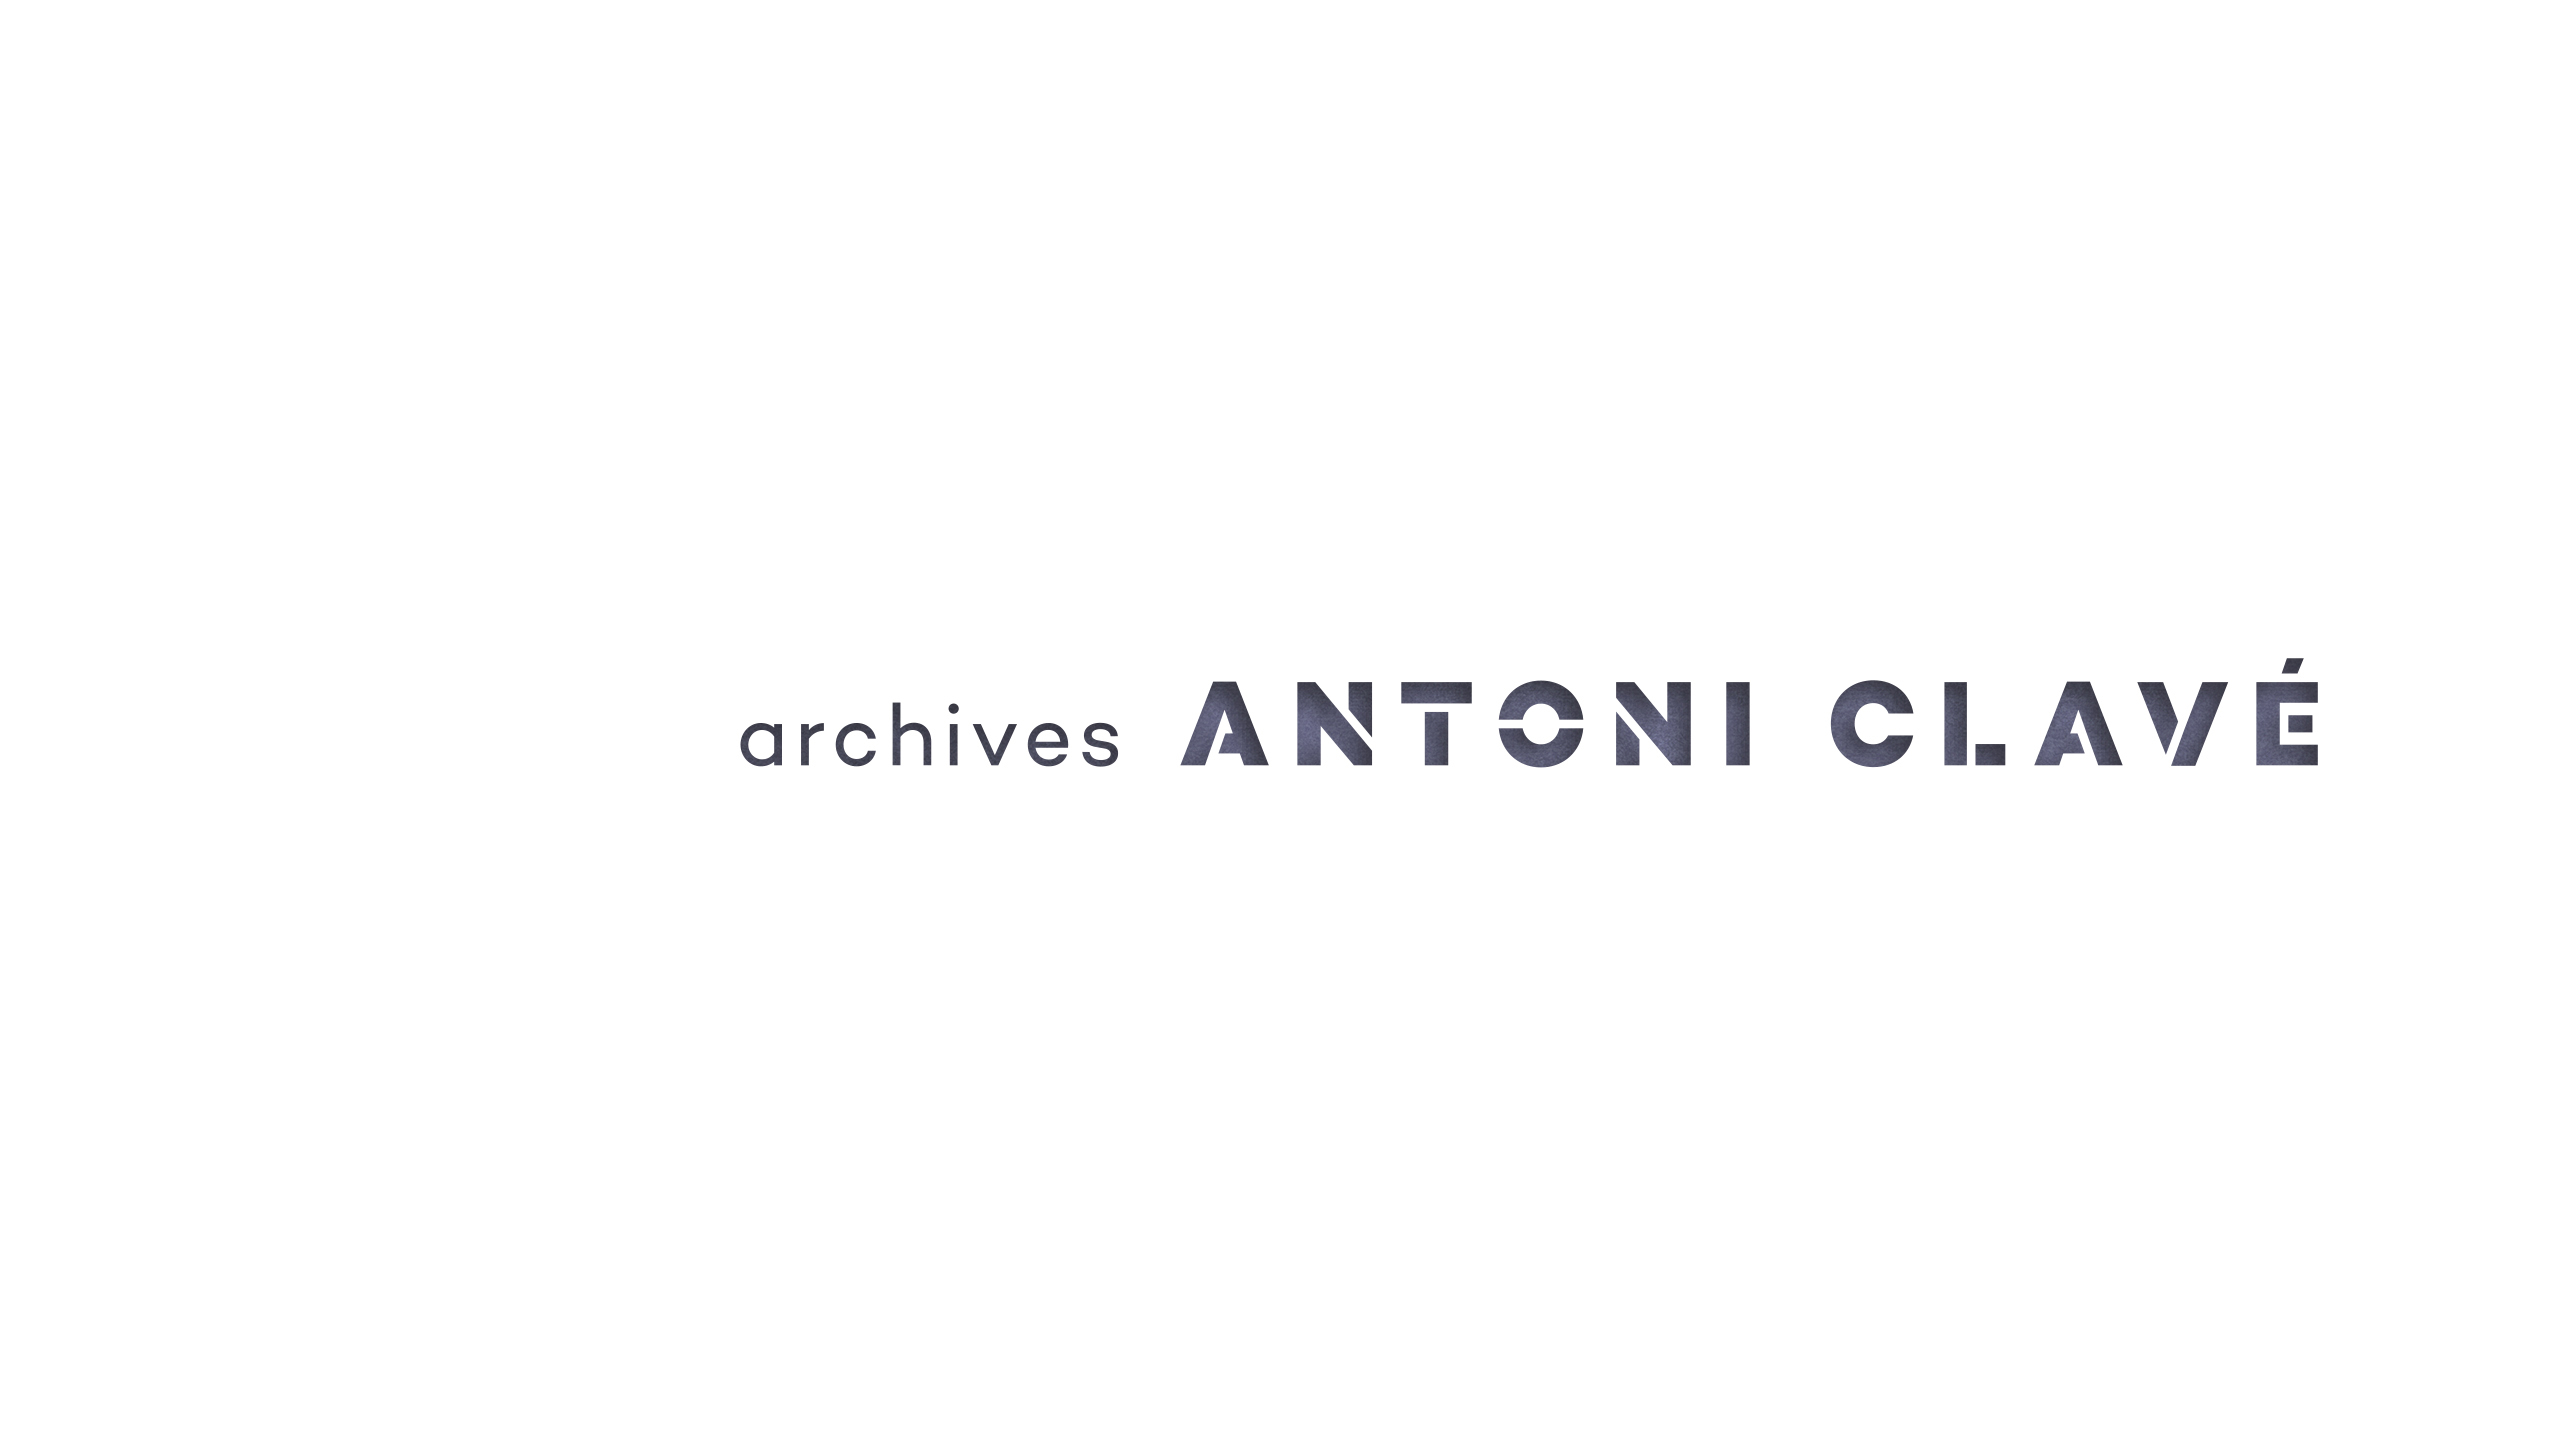 Archives clave 04